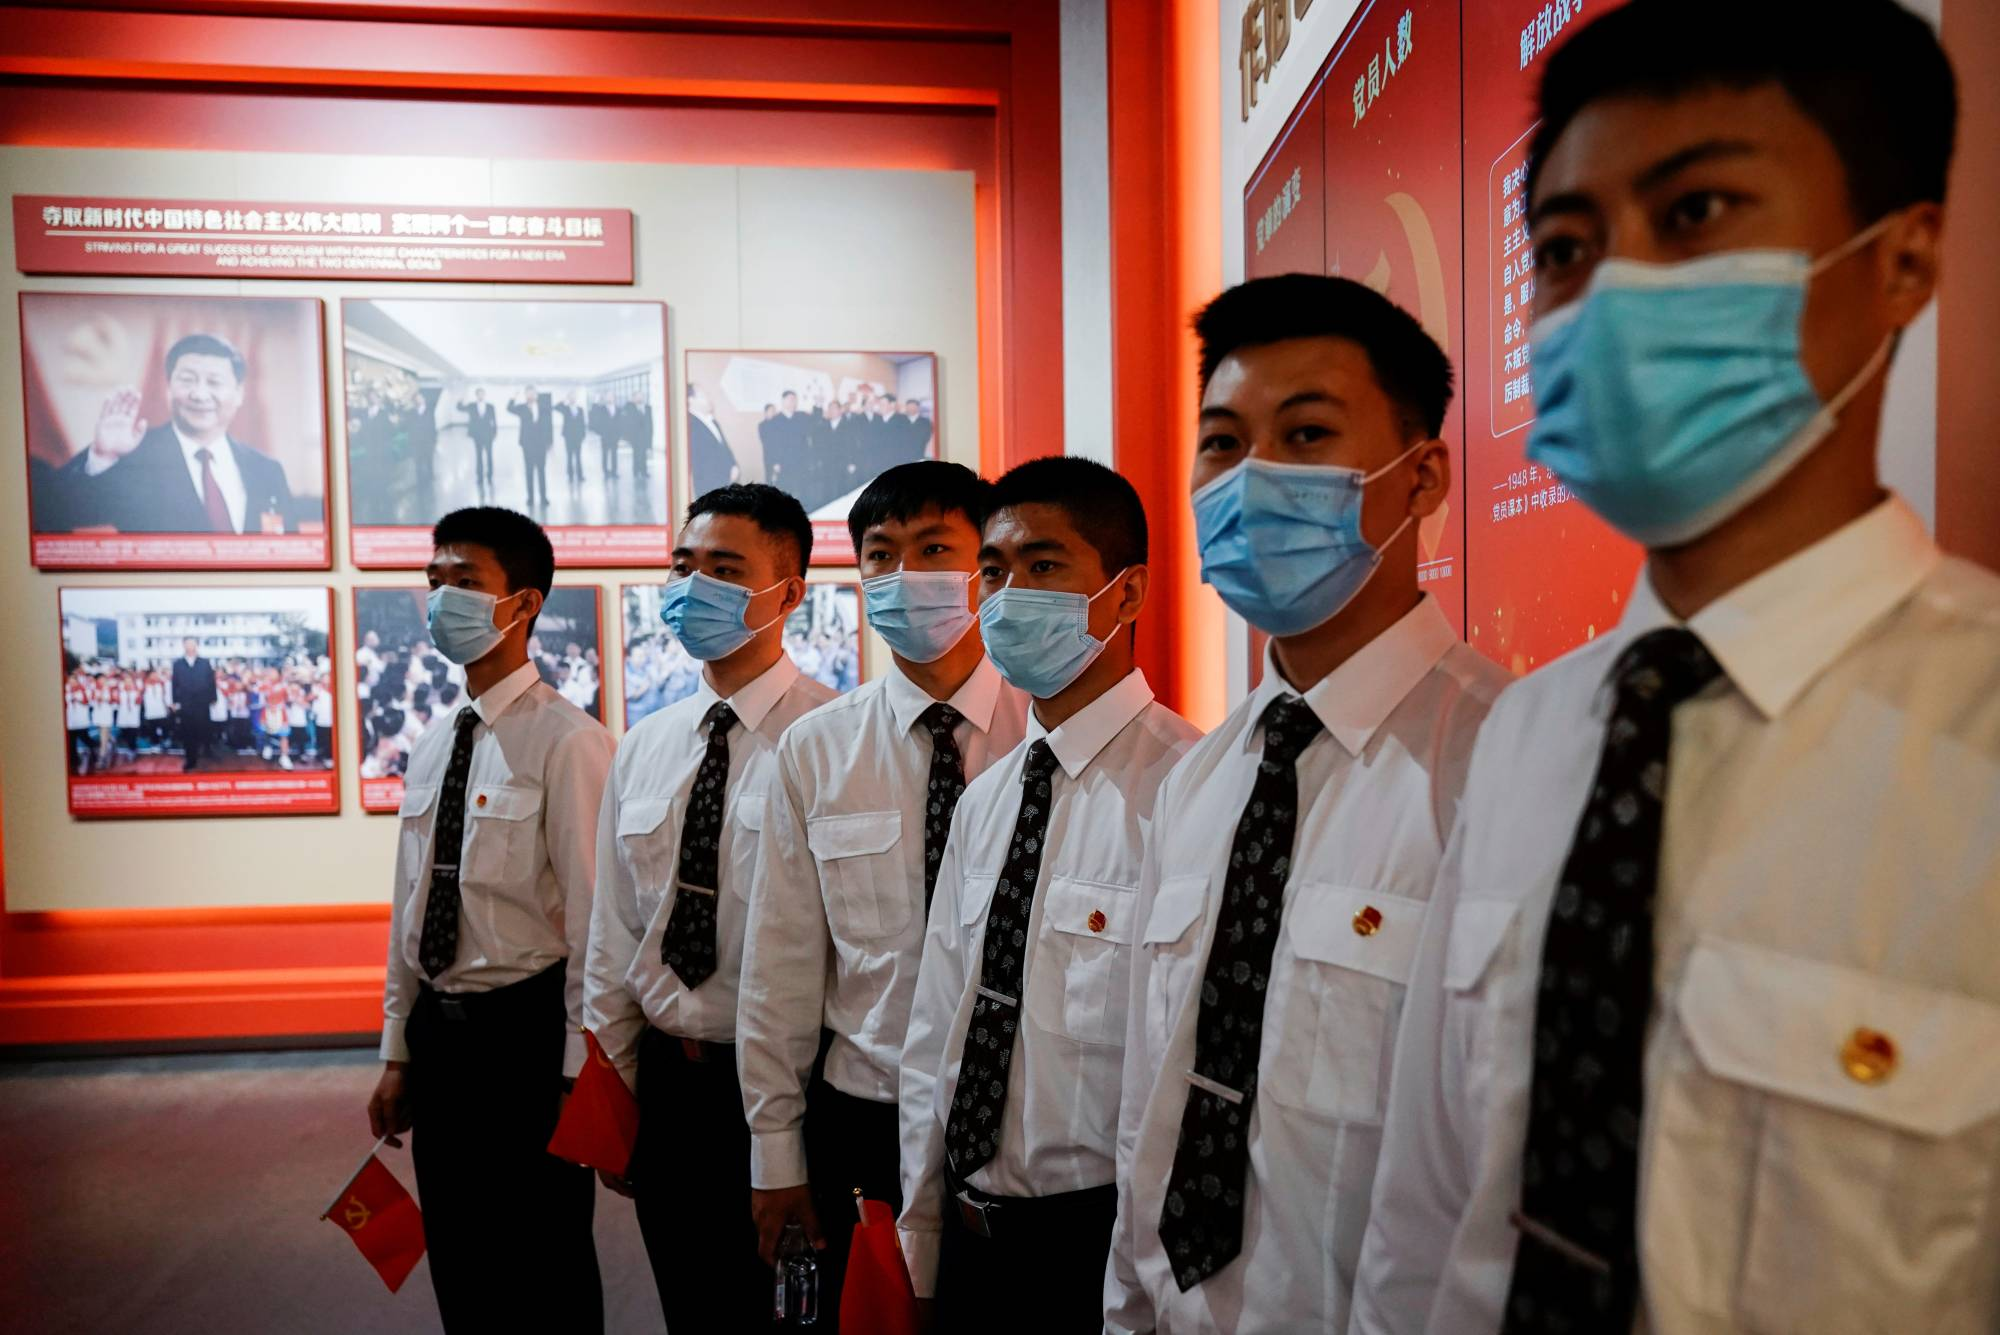 Security guards visit an exhibition at the Memorial of the First National Congress of the Communist Party of China in Shanghai. | REUTERS